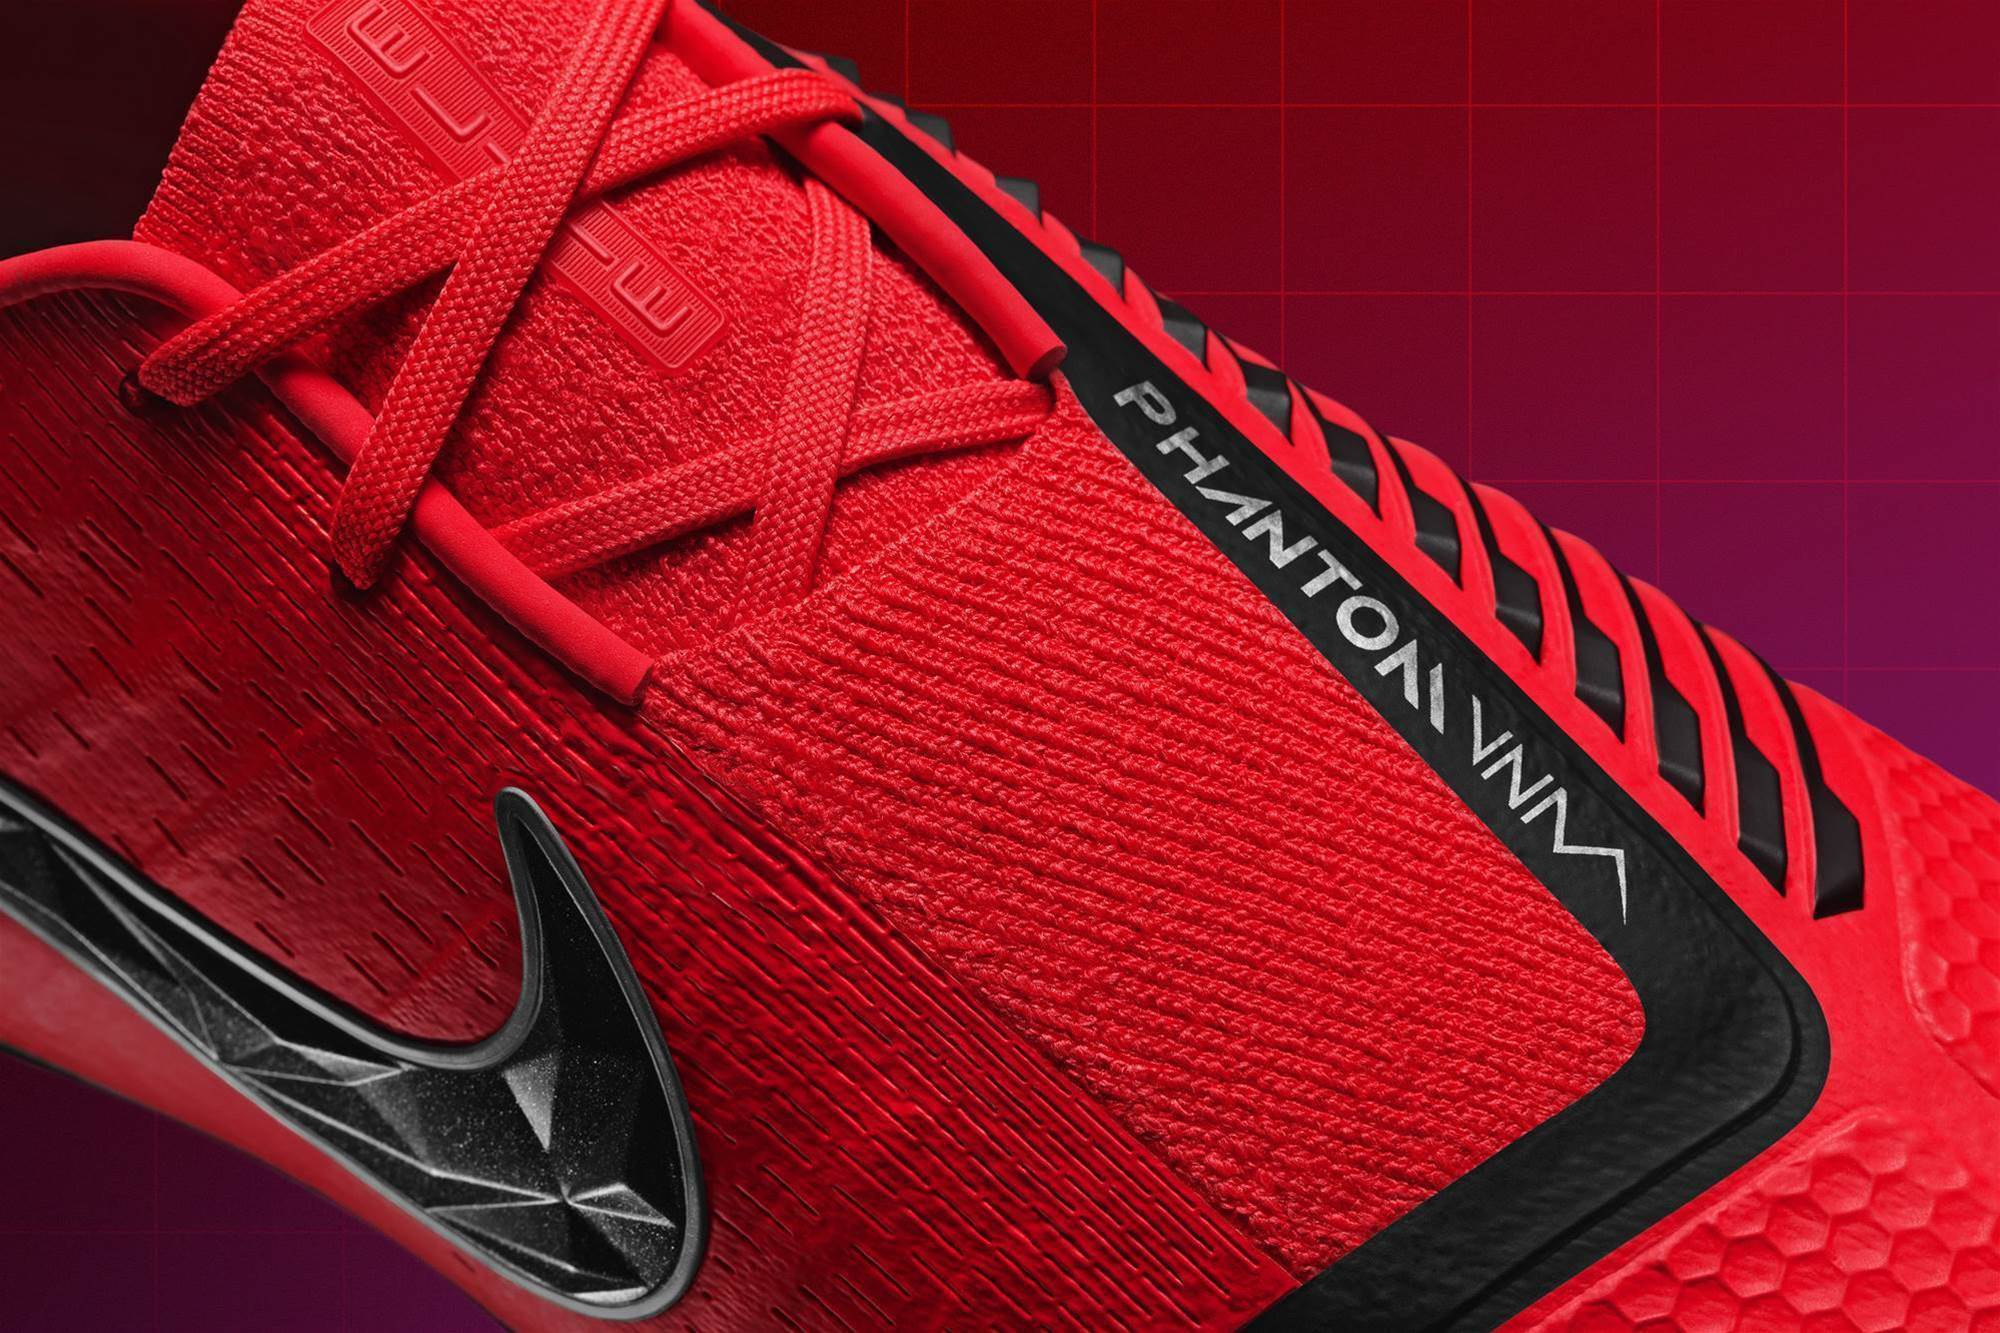 Nike set to release PhantomVNM boots